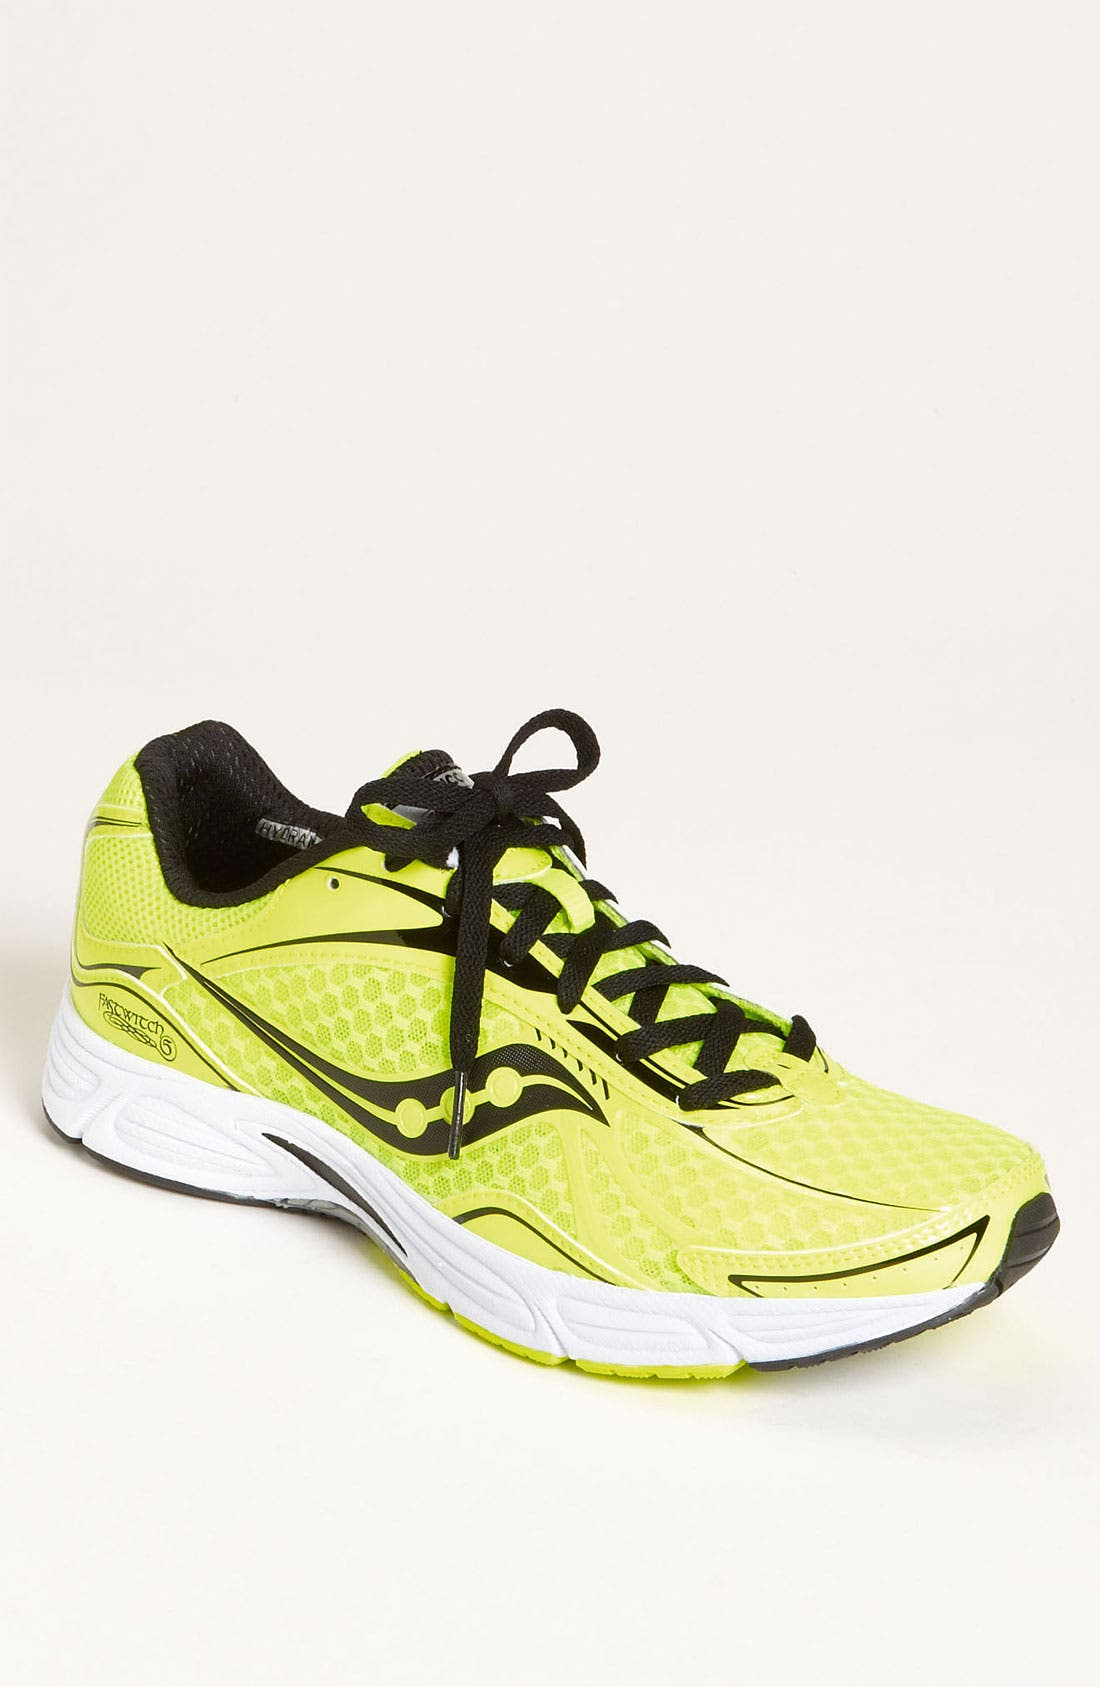 Alternate Image 1 Selected - Saucony 'Grid Fastwitch 5' Running Shoe (Men)